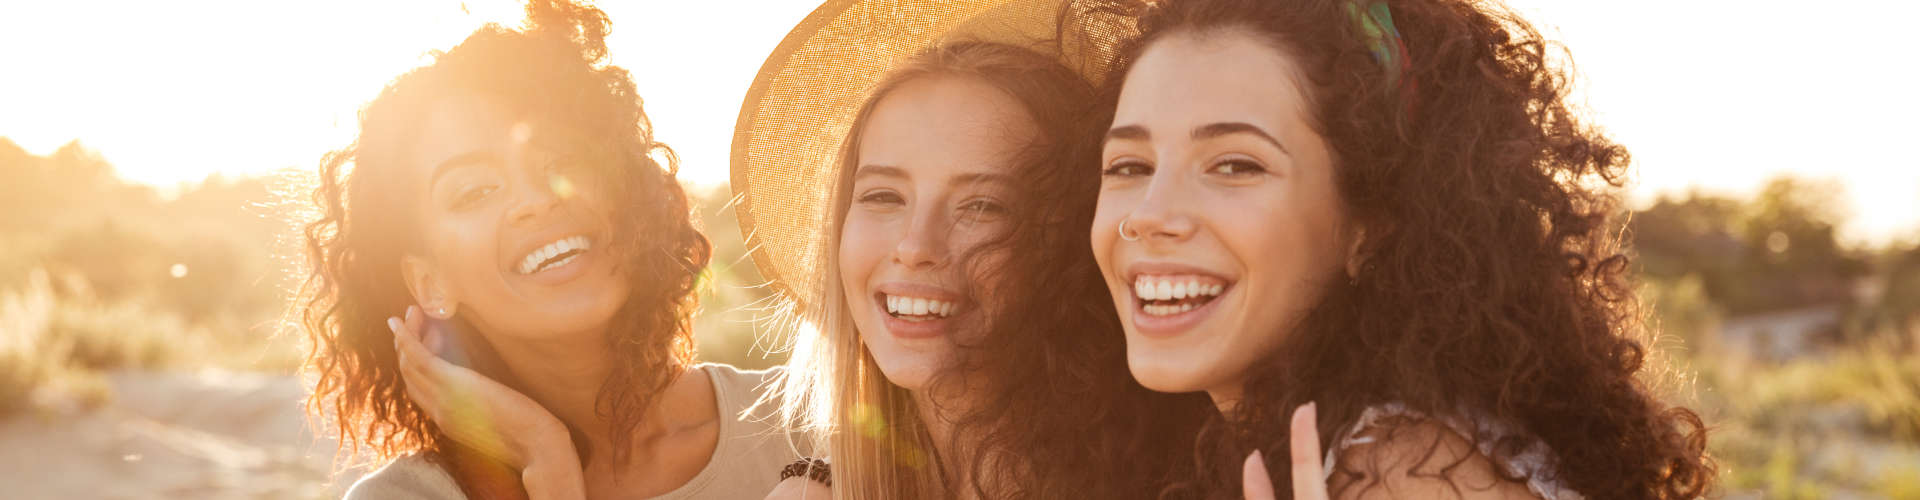 Young caucasian and african american women 20s in stylish clothing laughing during summertime.